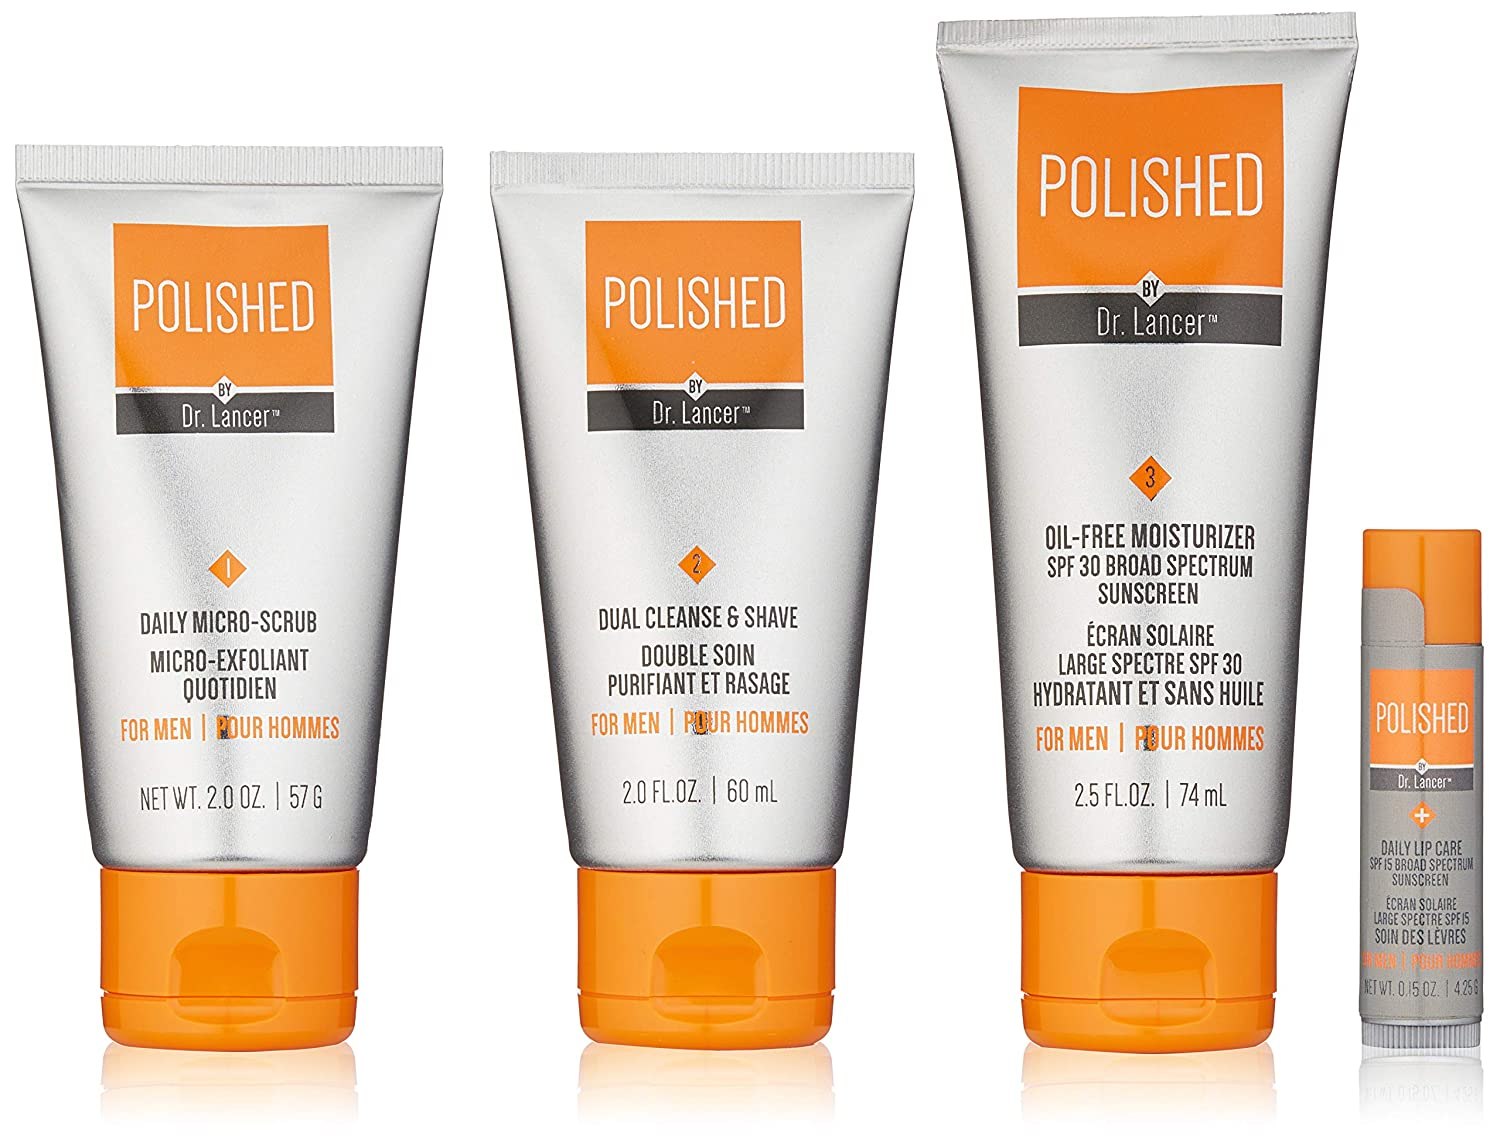 84a0eef8087 Amazon.com: Polished by Dr. Lancer Deluxe Men's Skincare Travel Kit, 0.6  lb.: Luxury Beauty